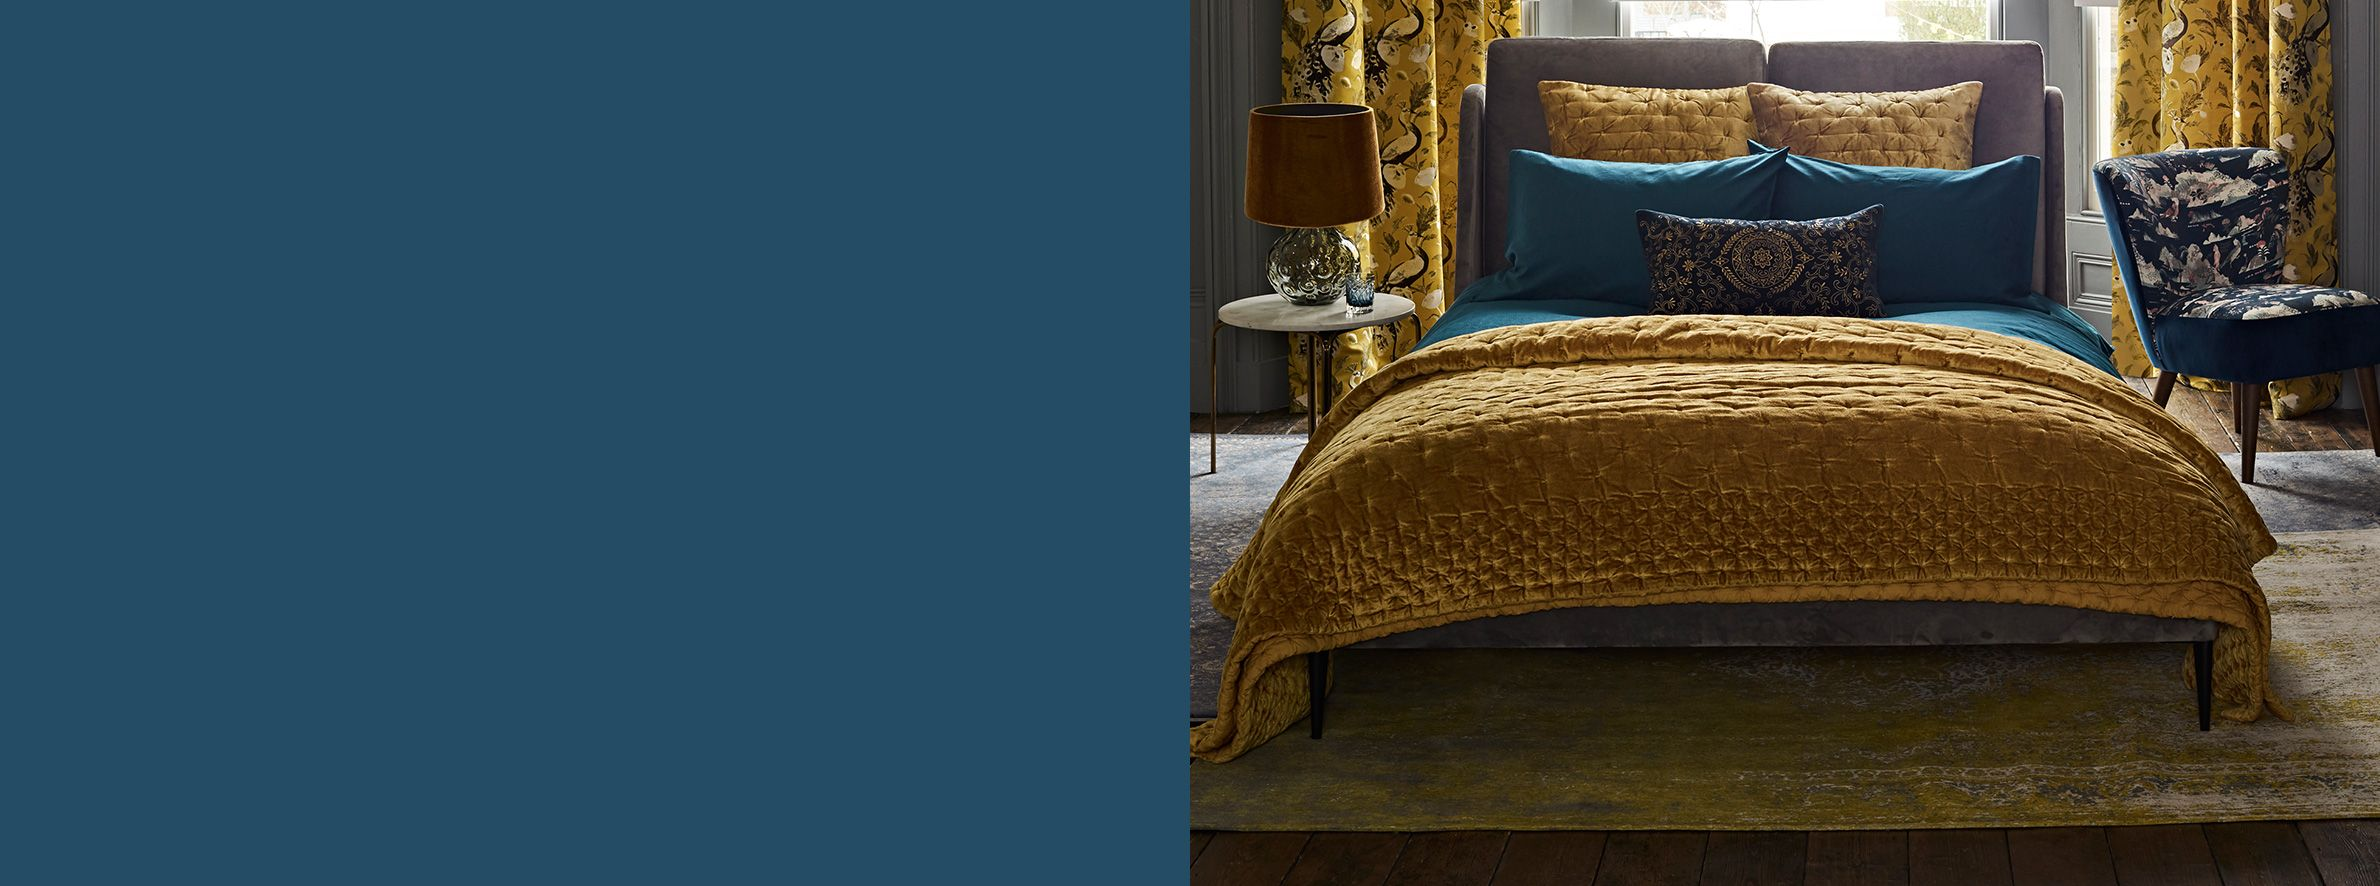 our collection of beautiful throws and cosy blankets add colour and texture to bedrooms - Throws Bedroom